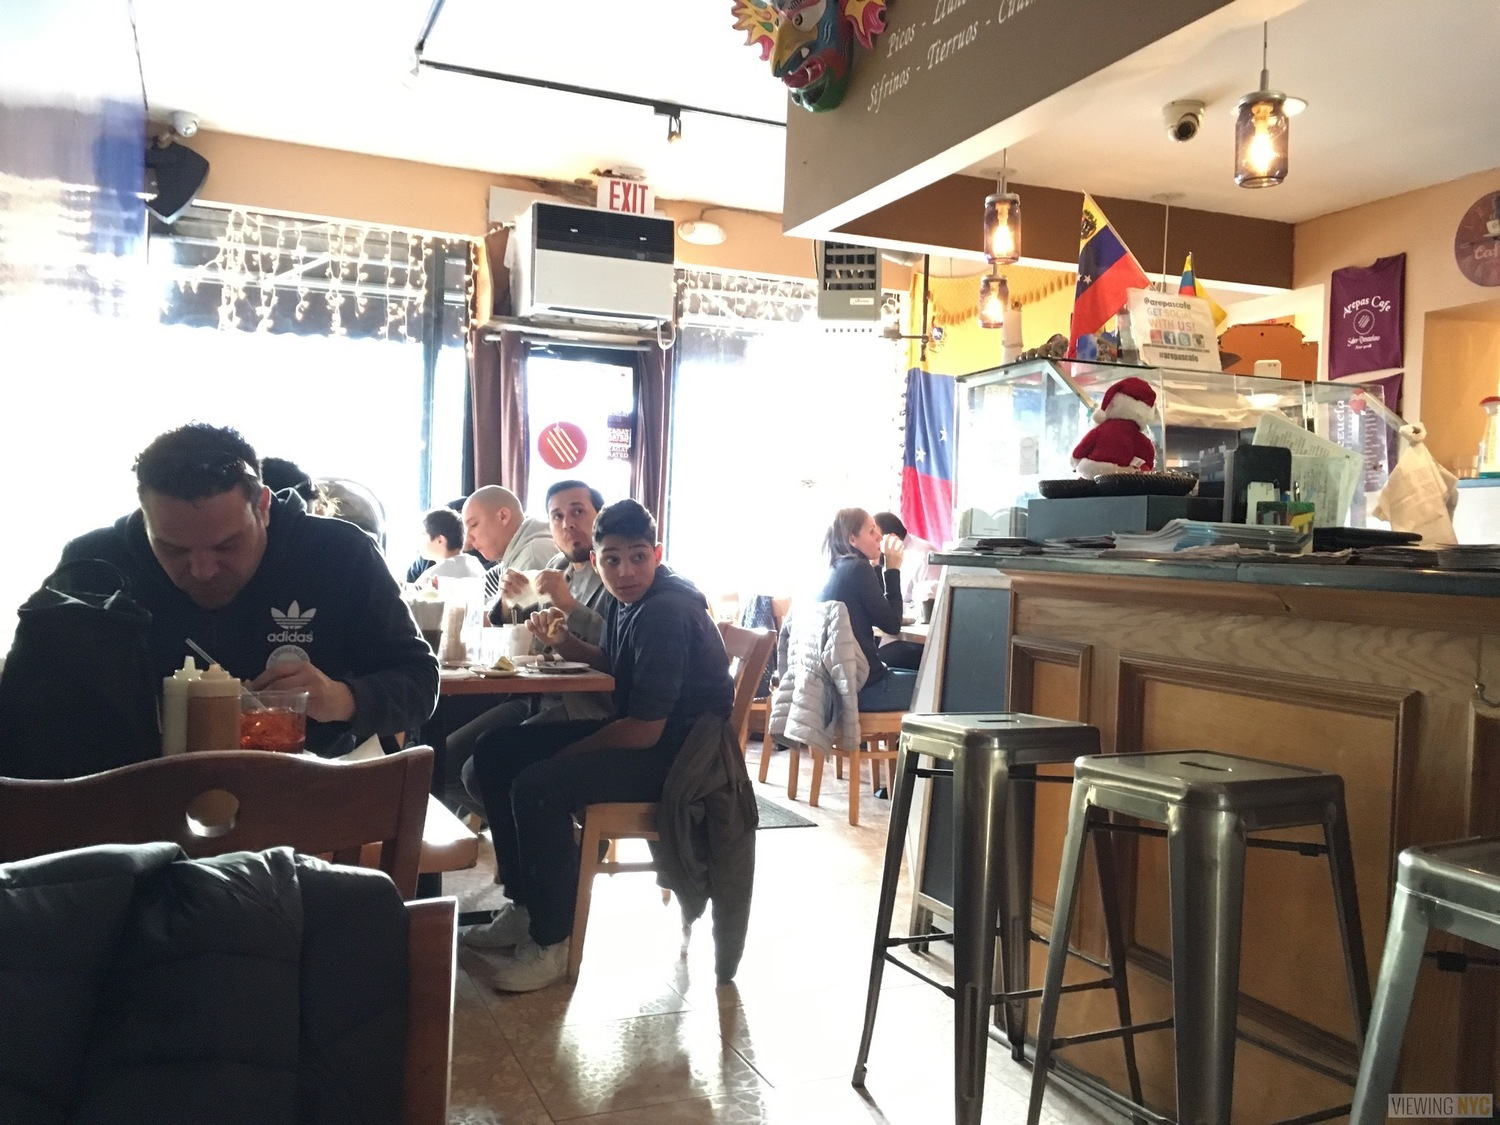 Interior | Arepas Cafe, Astoria